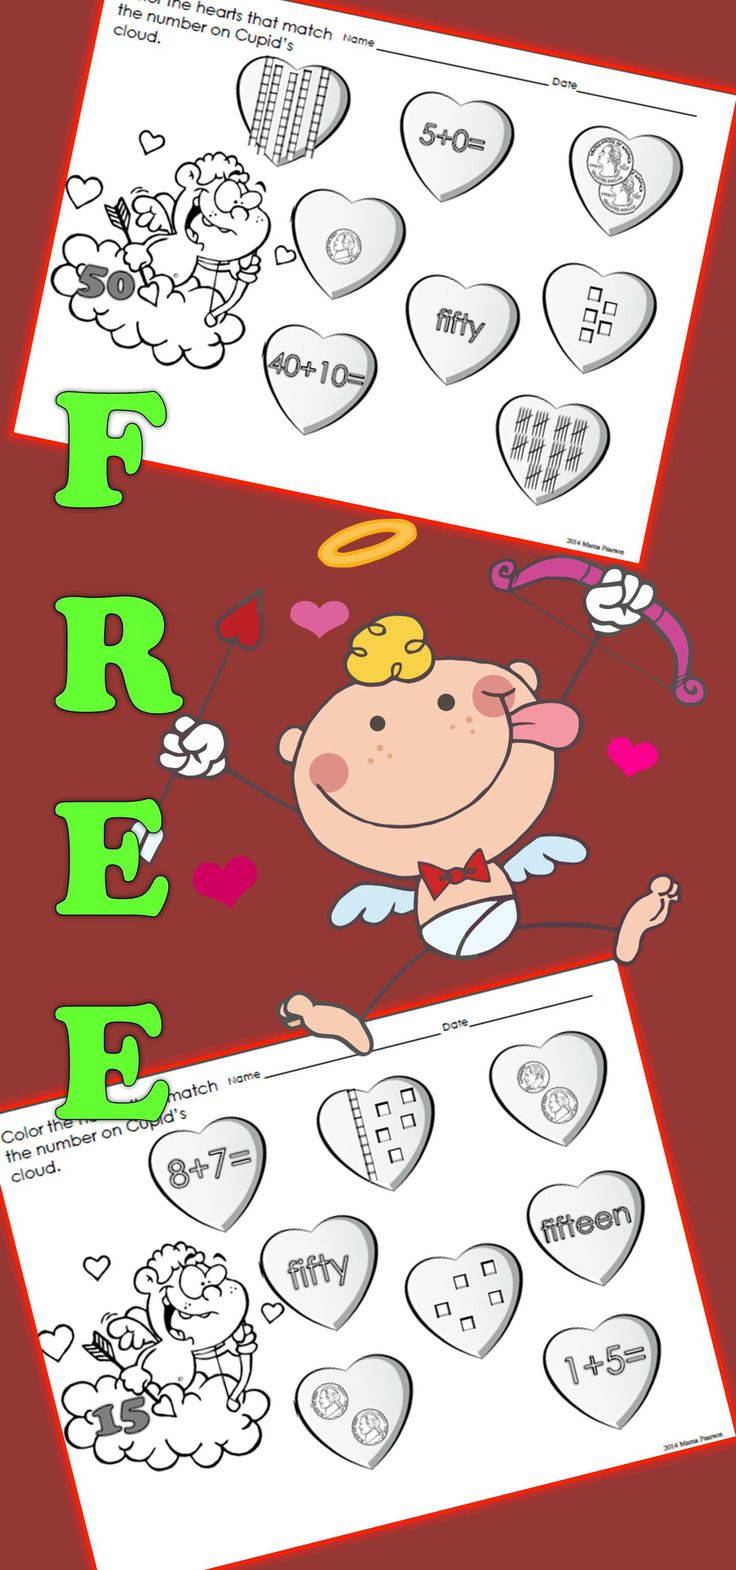 10 ready to use time saving printables that will help your students review numbers, number words, tally marks, money, and adding. Your students see a number on Cupid's cloud and color hearts that have corresponding representations of that number.